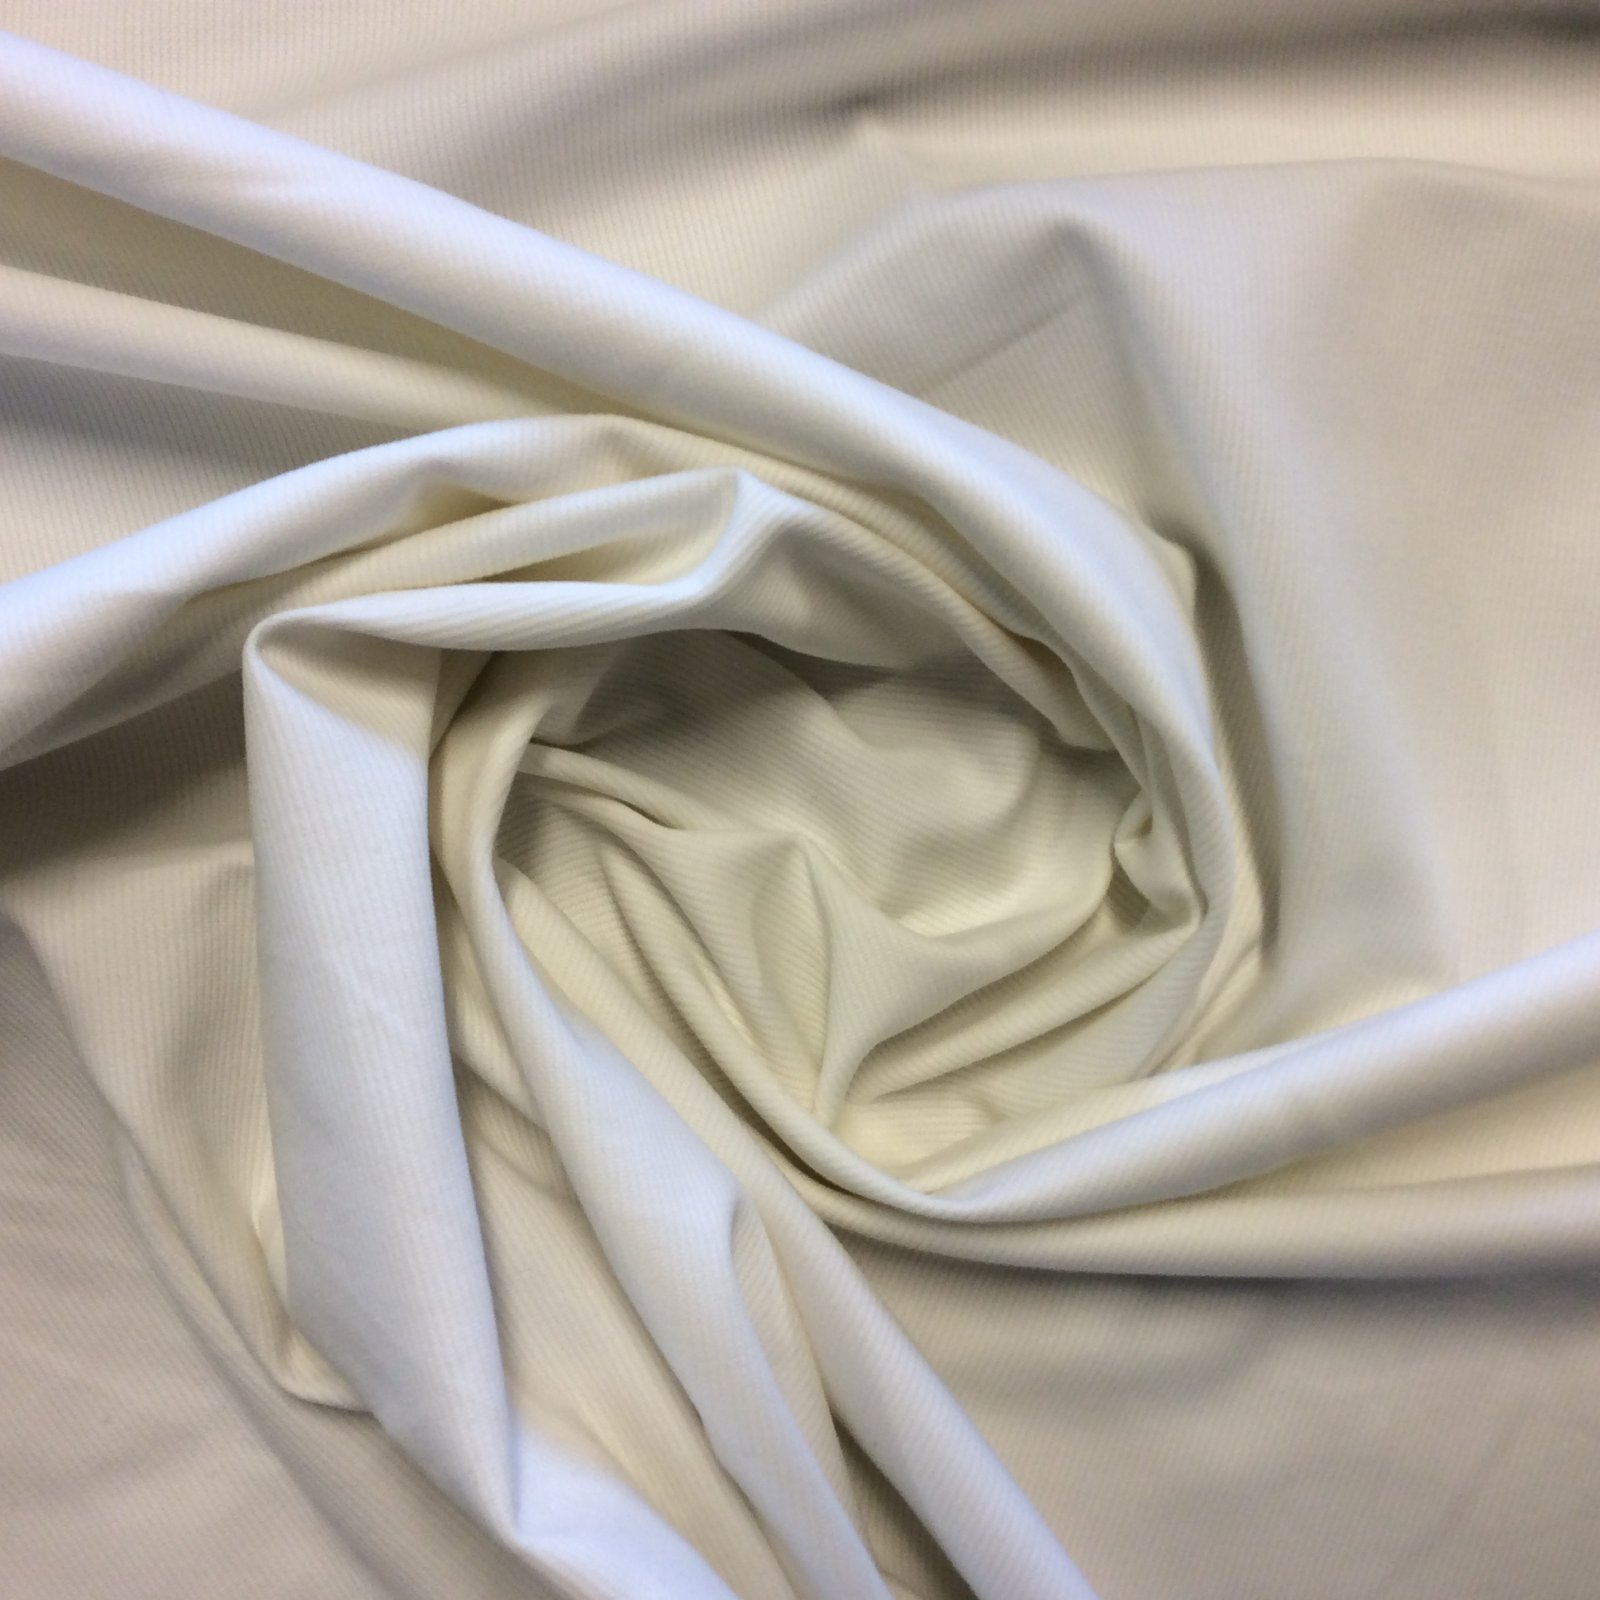 Knit Fabric Off White Ribbed Cotton Mid-Weight Apparel Sewing Stretch Dressmakers Fabric Made in Italy RR7557